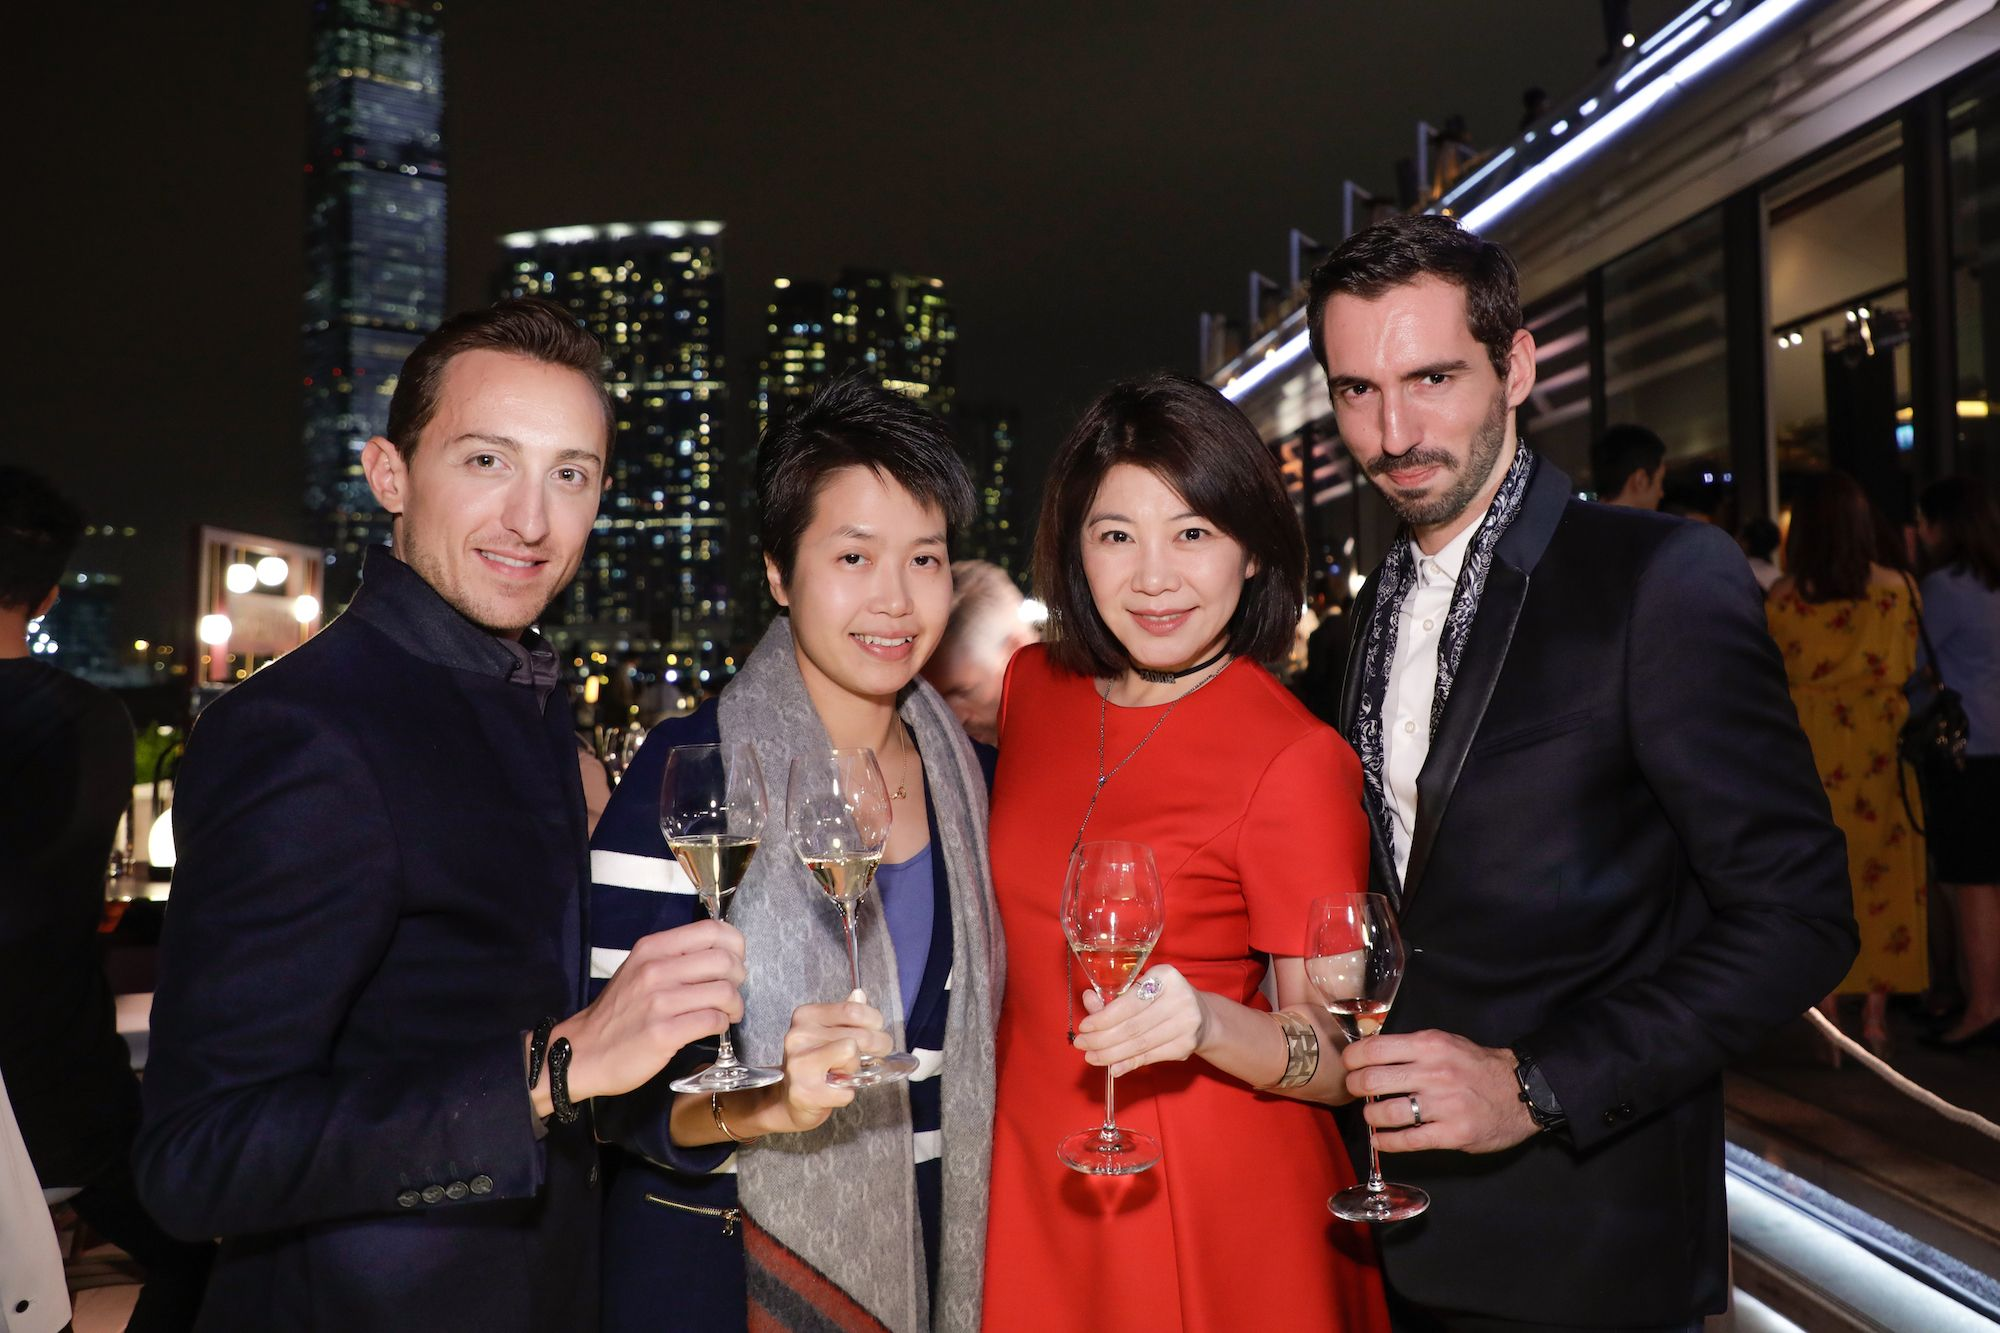 Julien Loïc-Garin, Katherine Lo, Bella Chhoa and Pierre-Louis Guillon